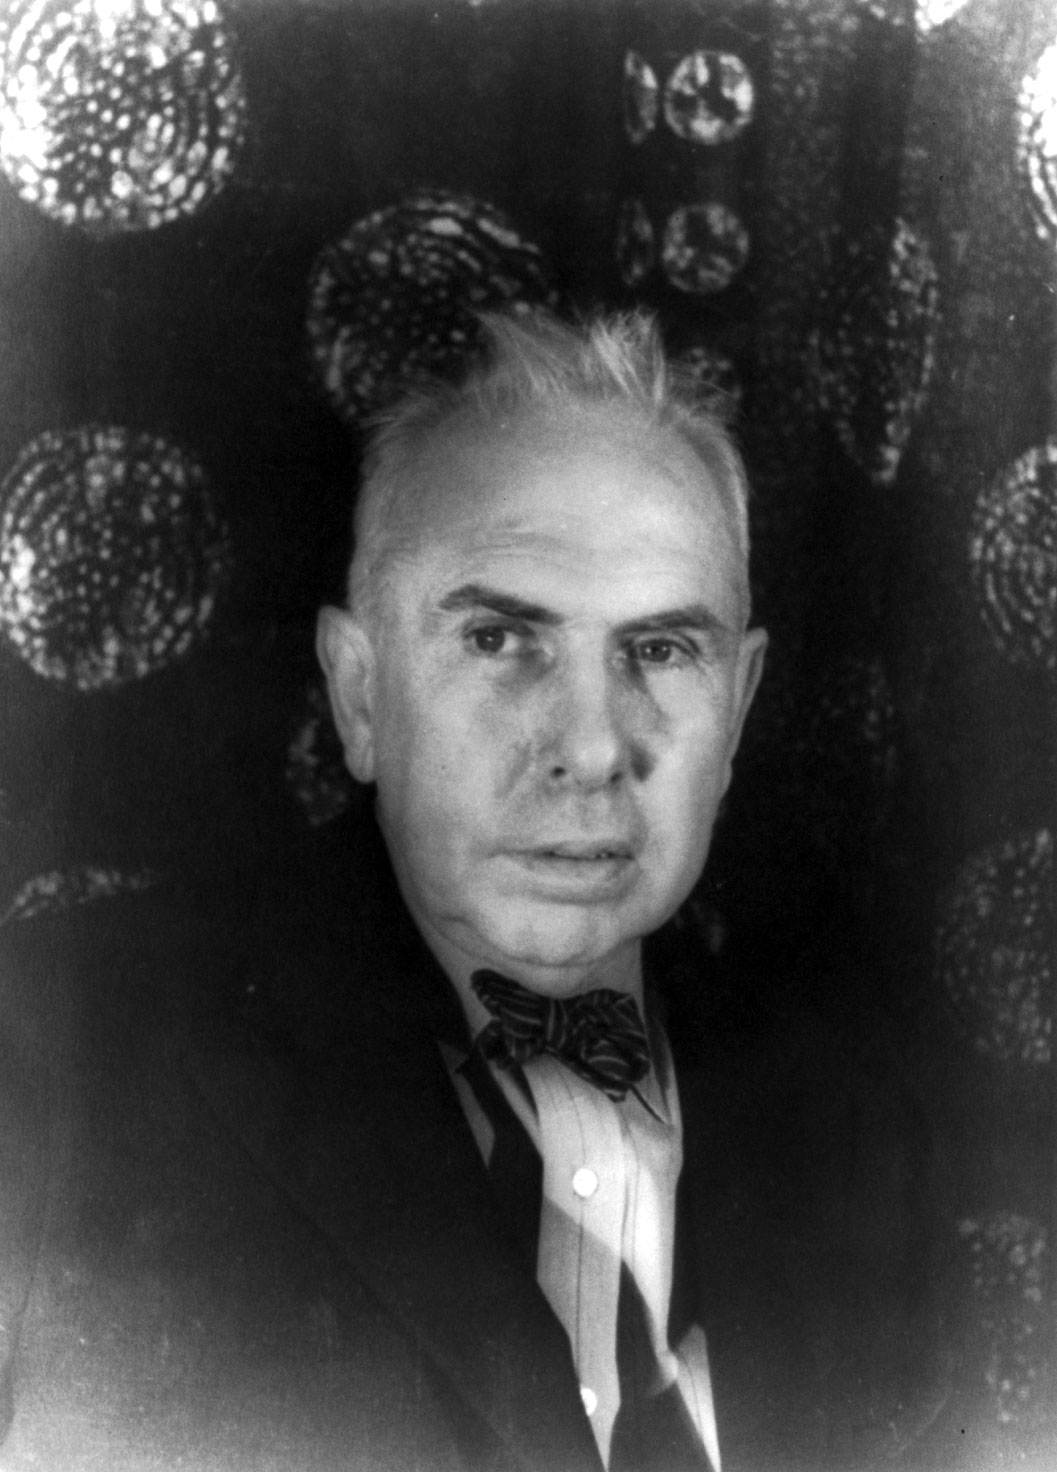 Image of Theodore Dreiser from Wikidata